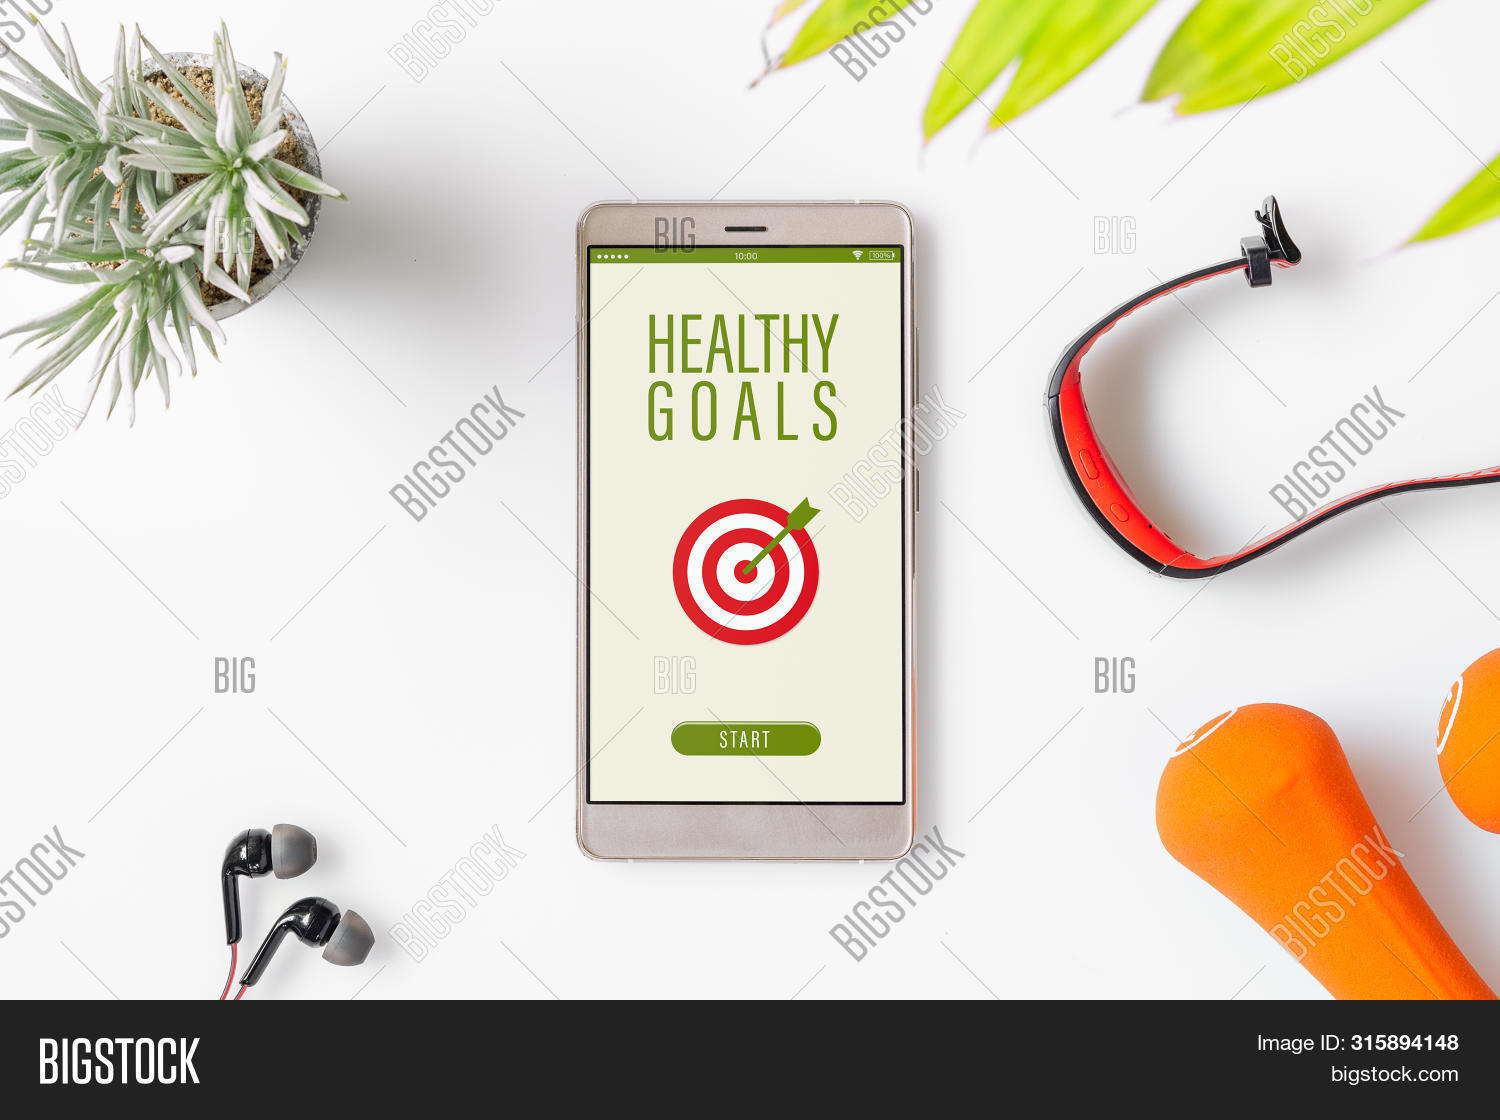 Top,above,app,athletic,background,blank,body,bright,concept,creative,diet,dumbbell,earphone,empty,exercise,fit,fitness,flat,goal,green,gym,health,healthy,isolated,lay,lifestyle,loss,mobile,mock,mockup,music,object,phone,plan,program,set,smart,smartphone,smartwatch,space,sport,sporty,technology,template,up,view,watch,weight,white,workout